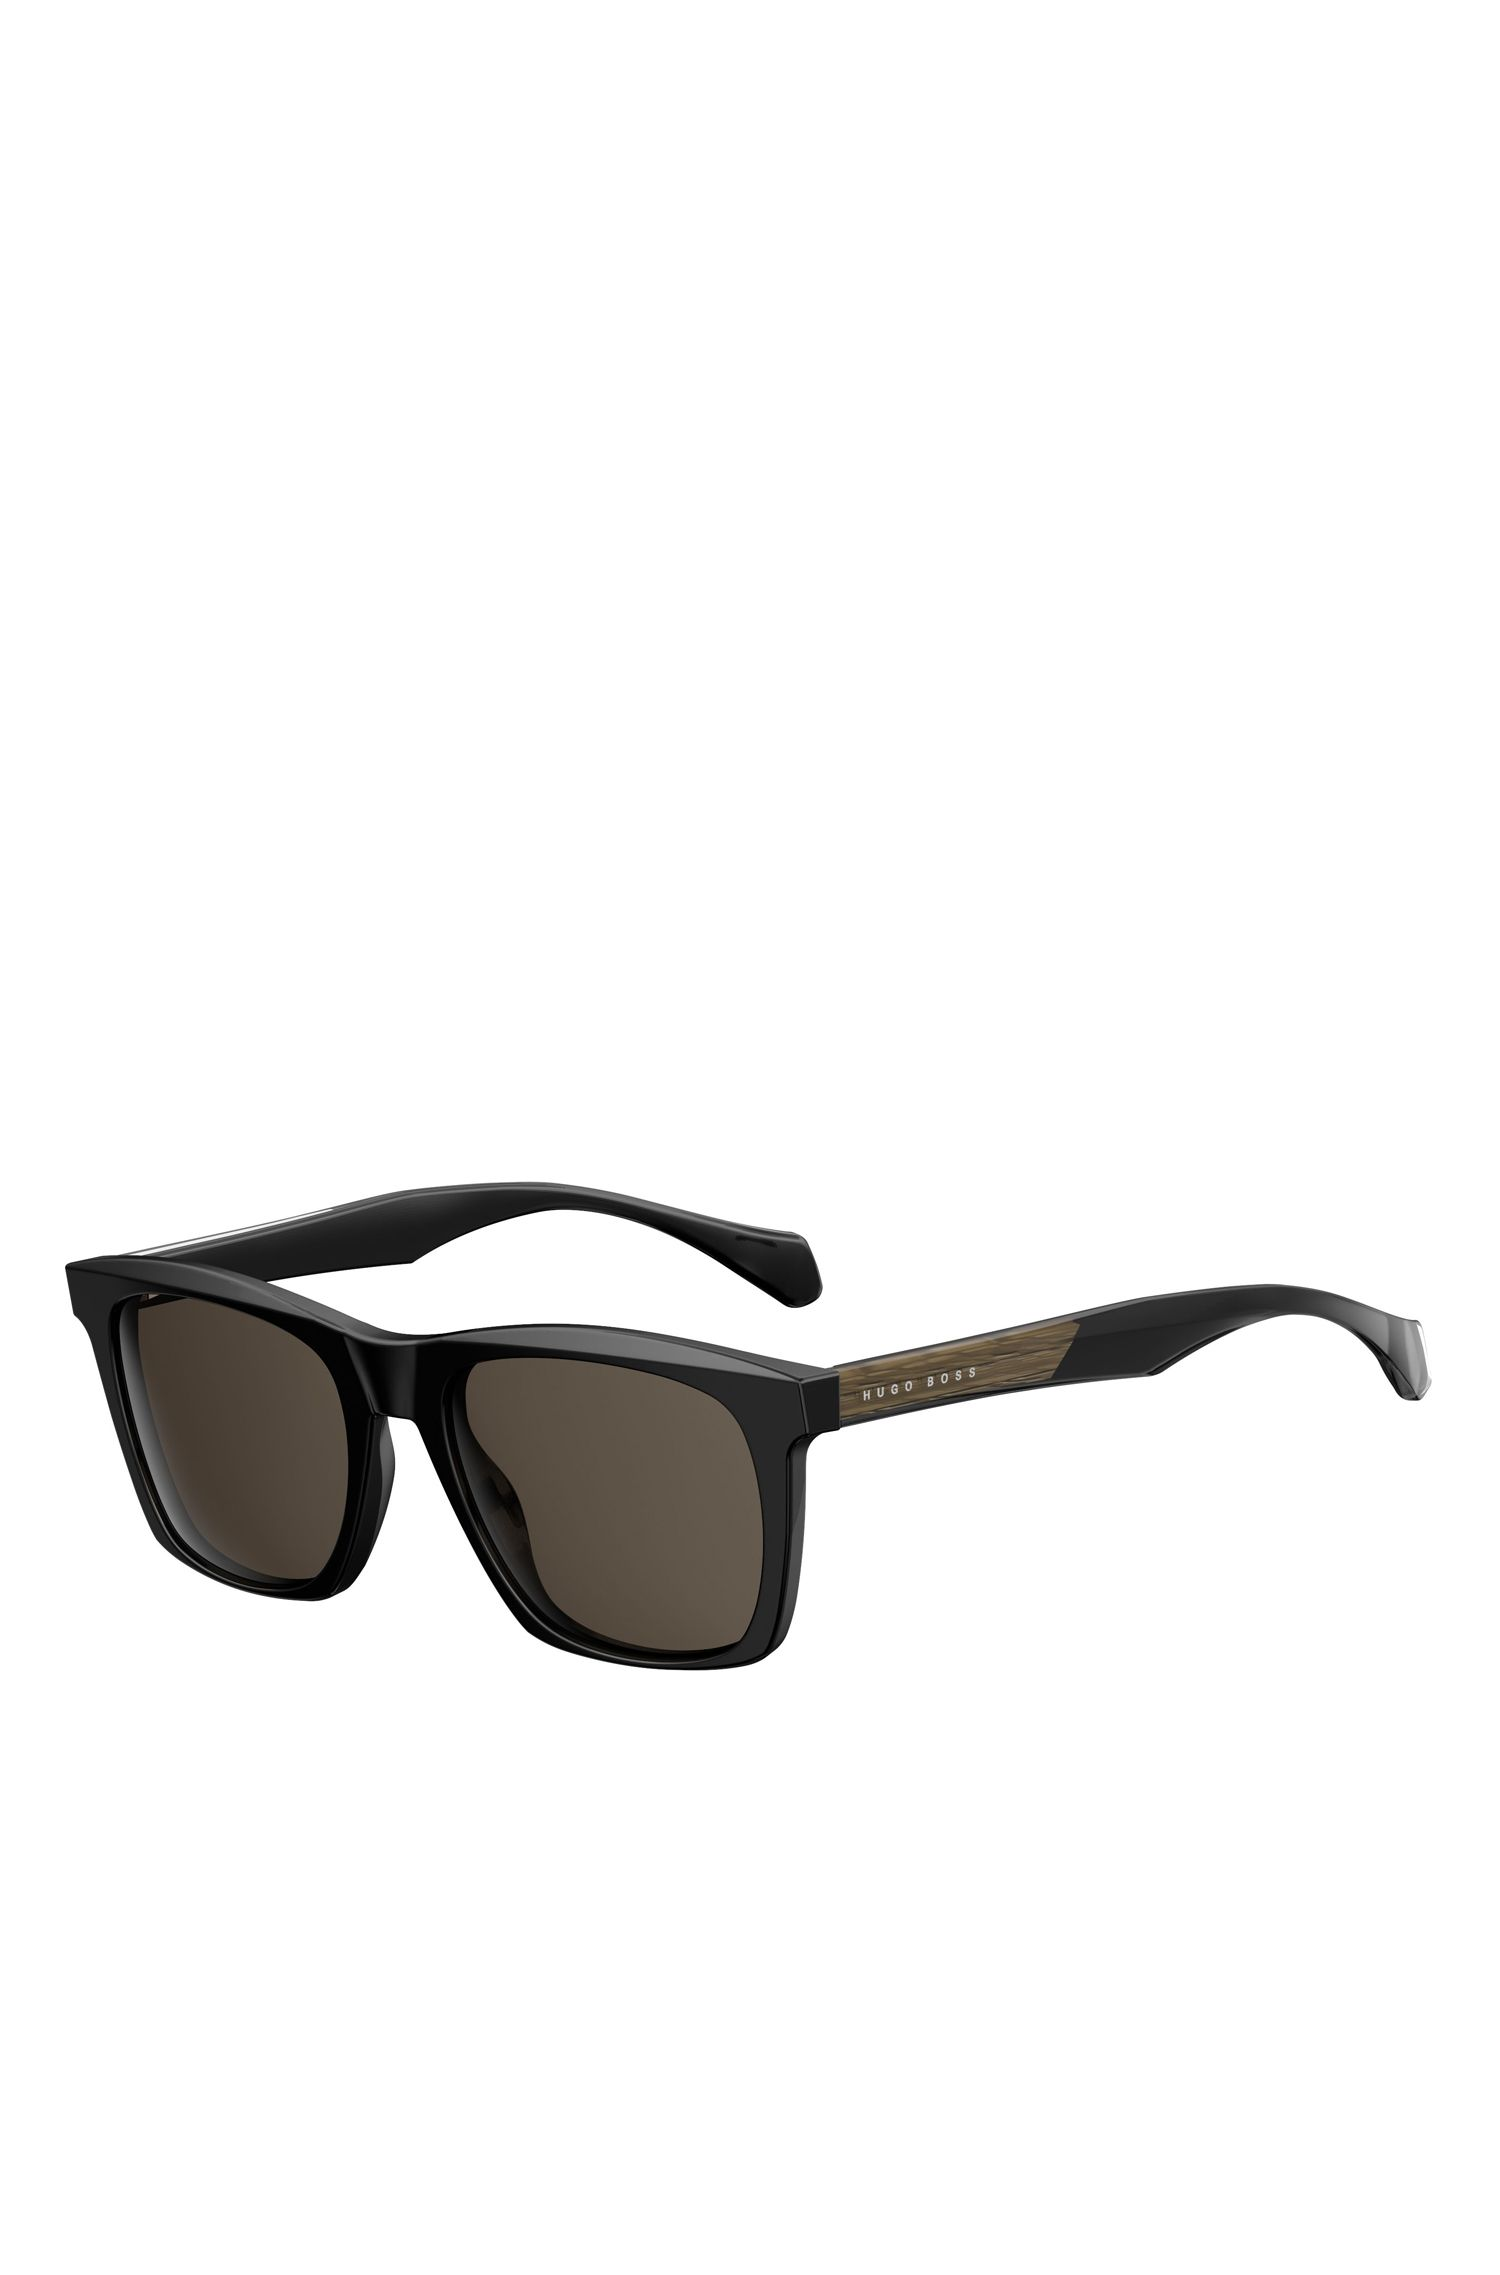 Black Acetate Rectangular Sunglasses | BOSS 0911/S